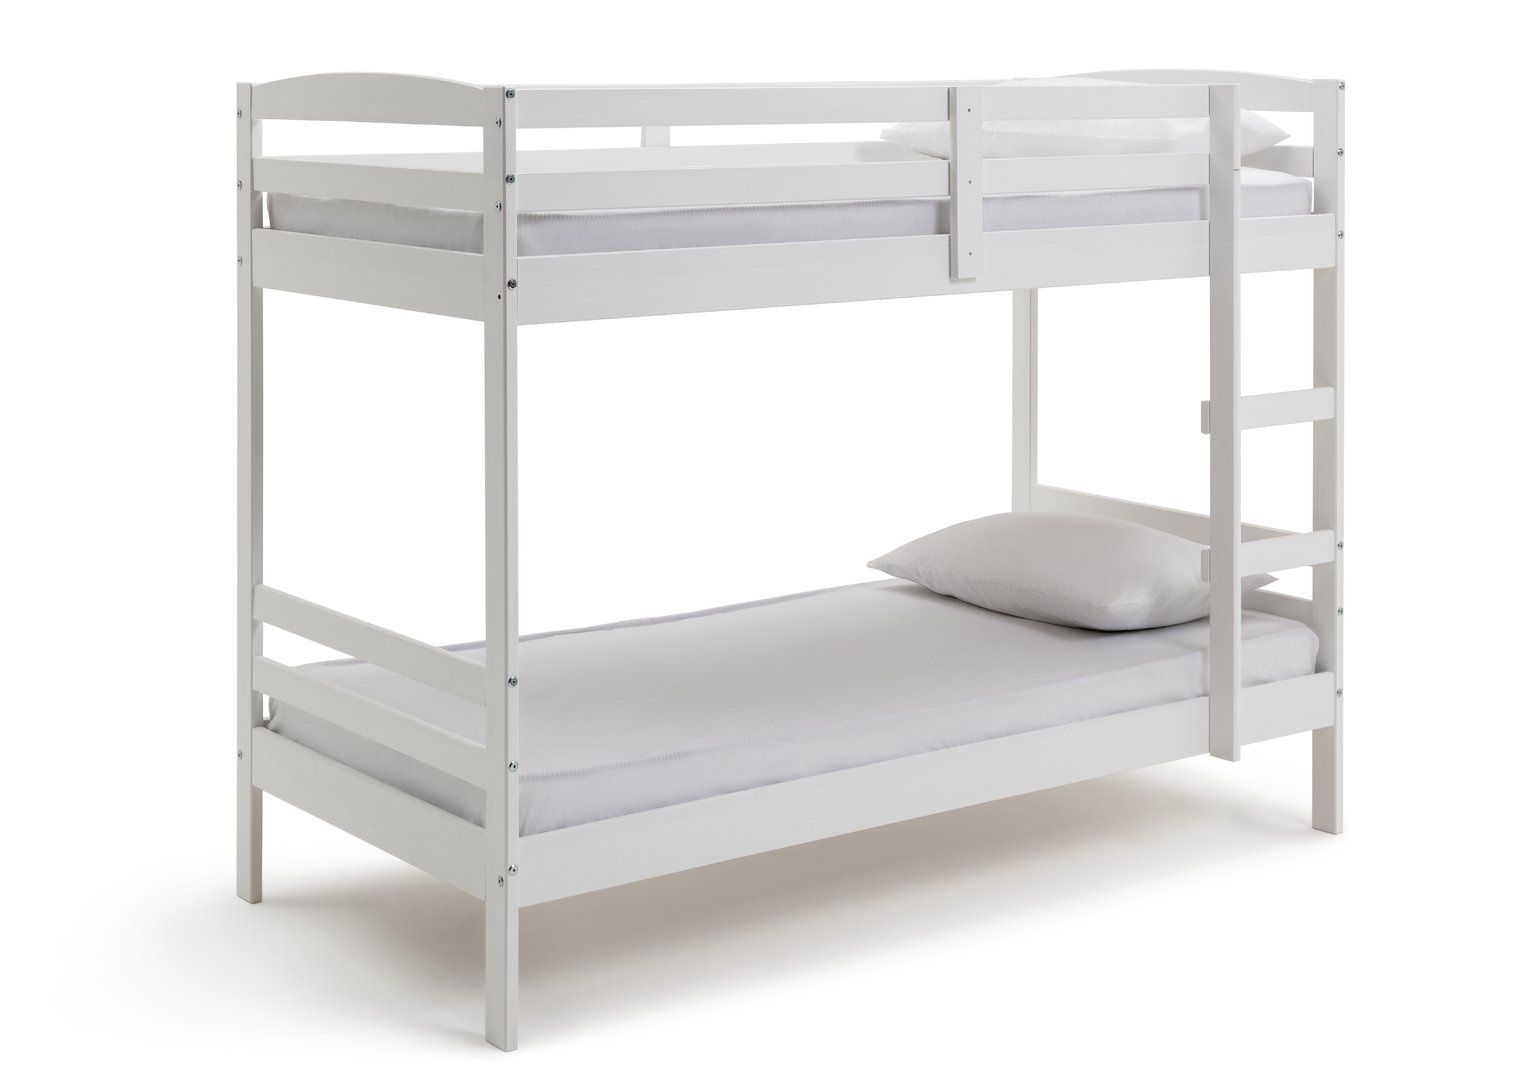 Small Bunk Beds buy home josie shorty bunk bed frame - white at argos.co.uk - your